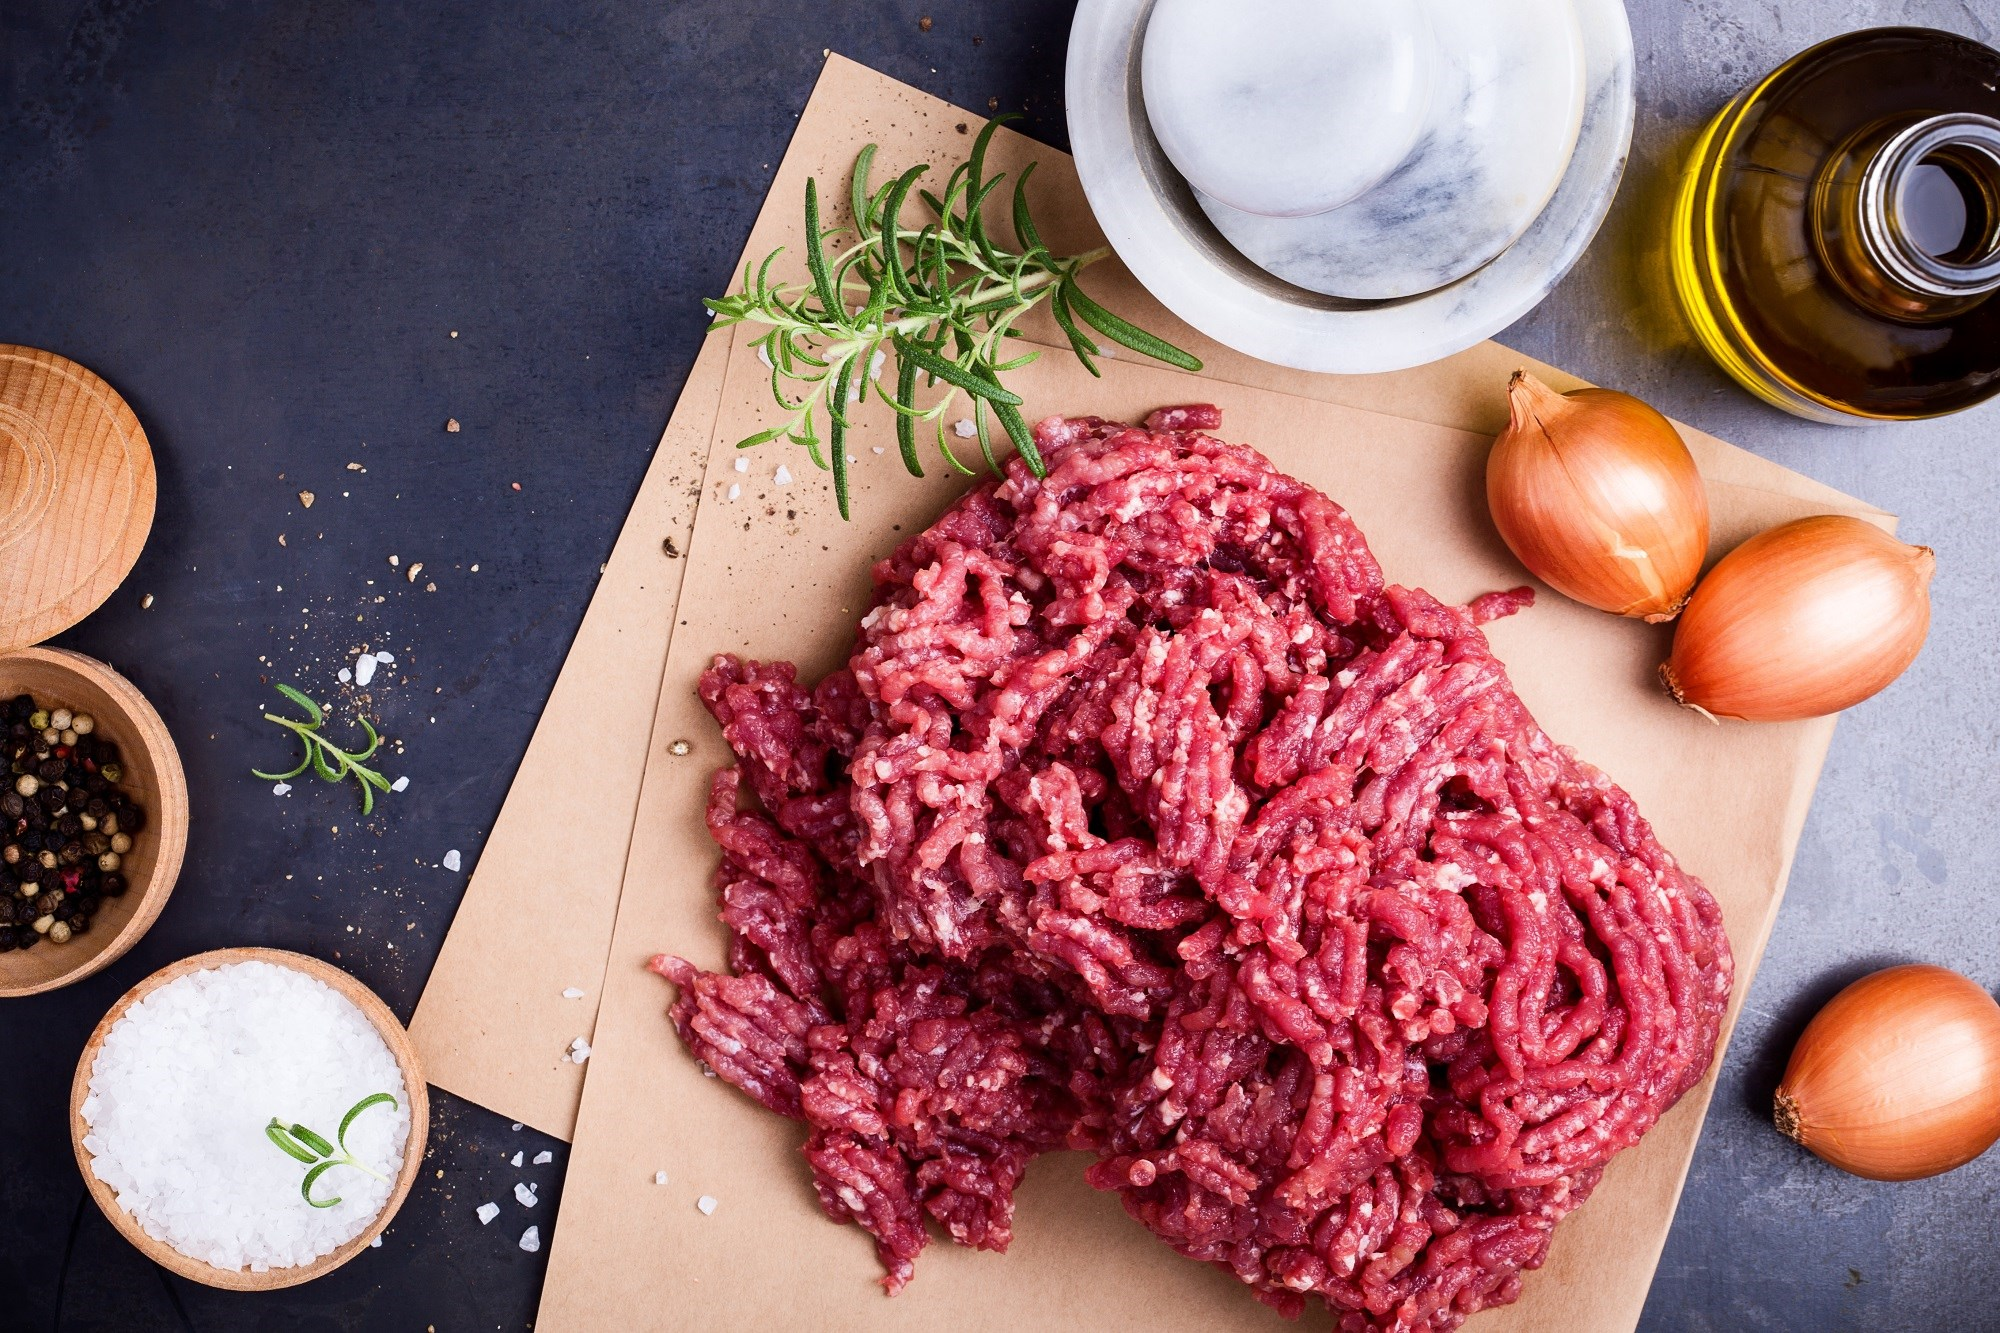 Ground Meat Products Recalled by Publix Super Markets